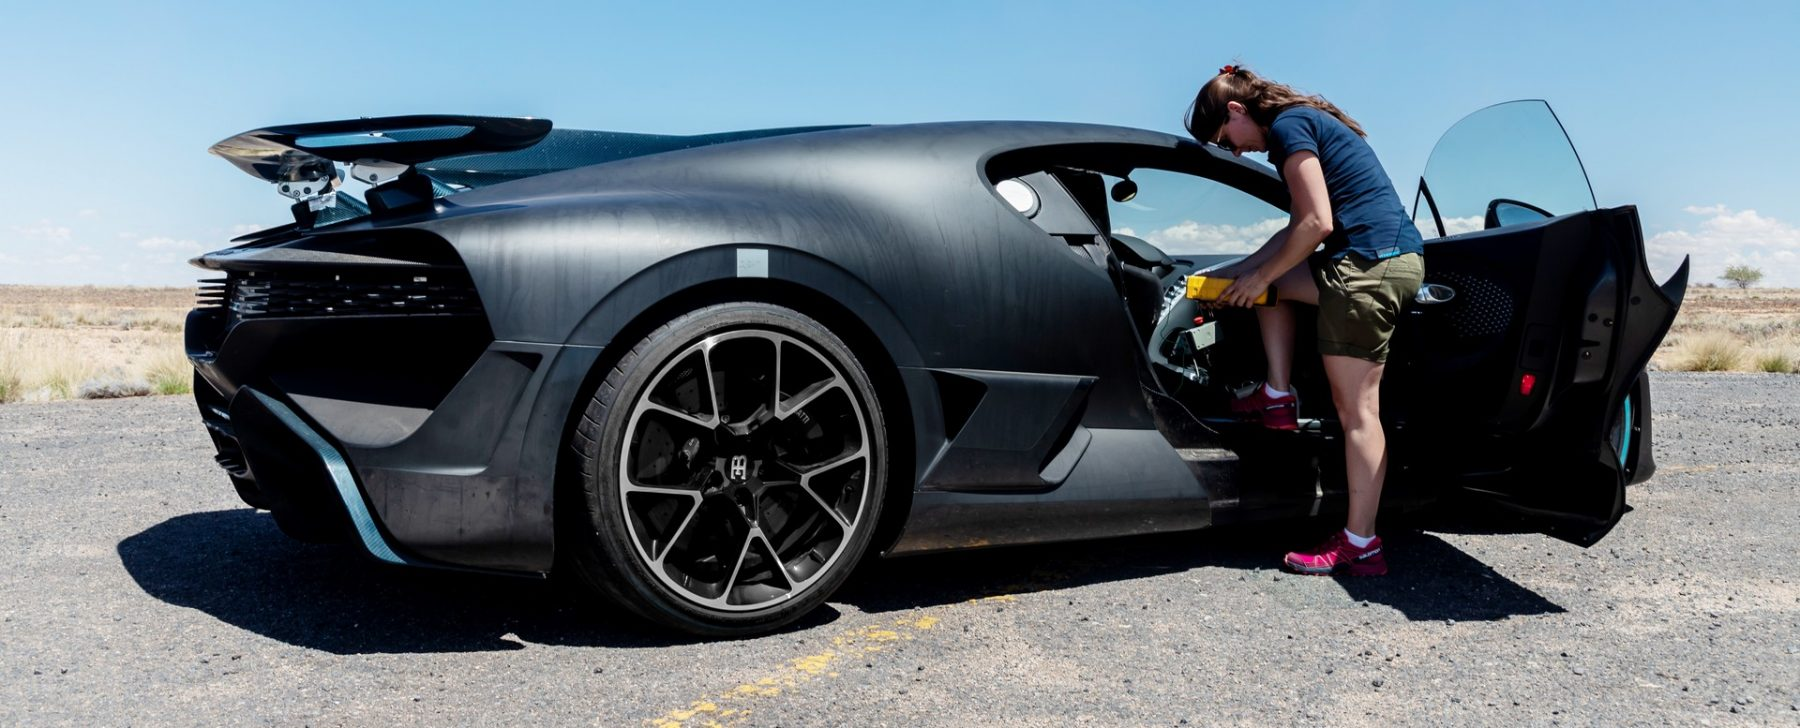 Bugatti-Chiron-Air-Conditioning-2-1800×728